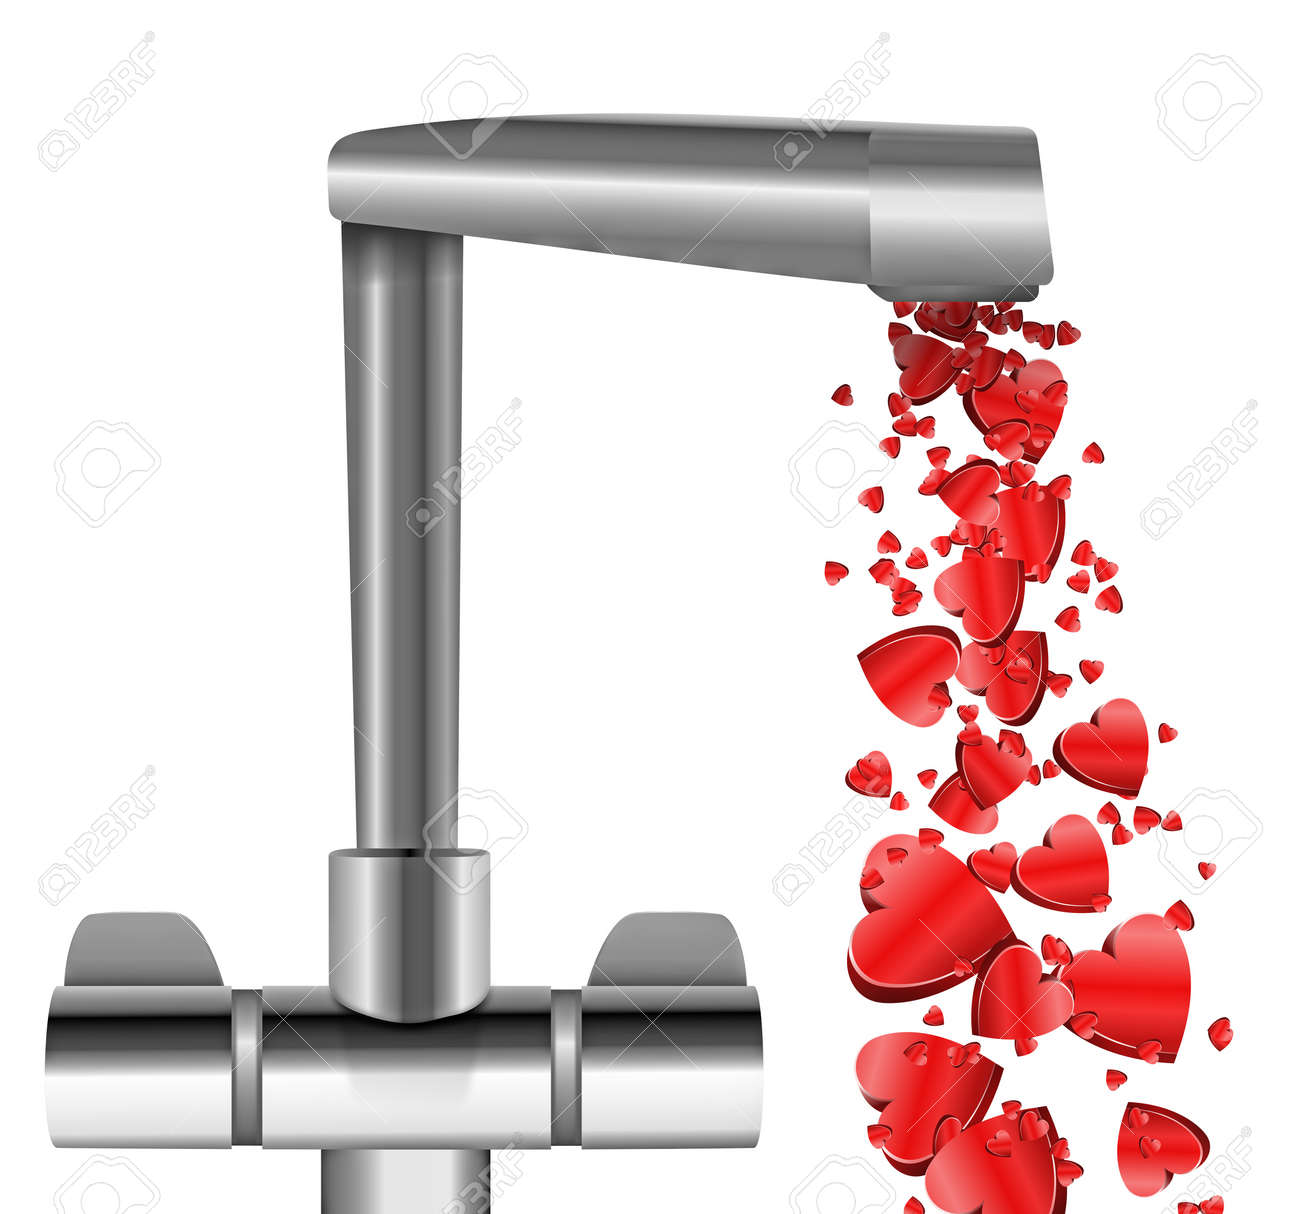 Illustration depicting a chrome water tap with metallic red love hearts flowing from the spout against a white  background. Stock Illustration - 12207924